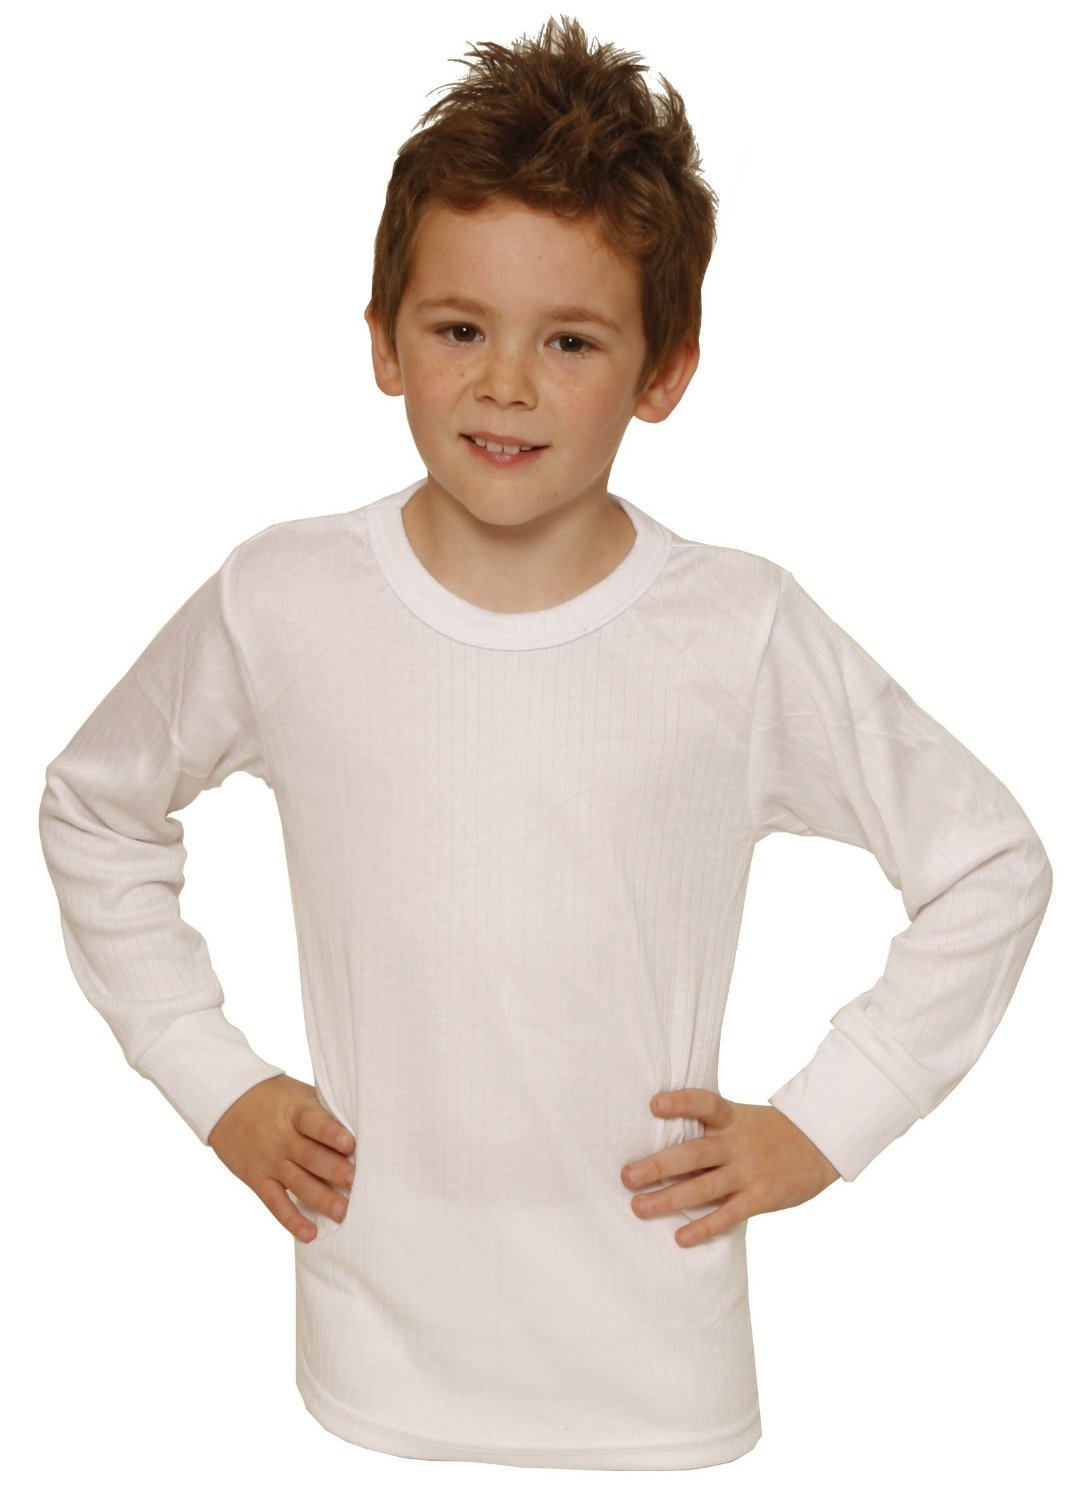 Octave 12 Pack Boys Thermal Underwear Long Sleeve T-Shirt/Vest/Top (2-3 yrs [Chest: 18-20 inches], White)